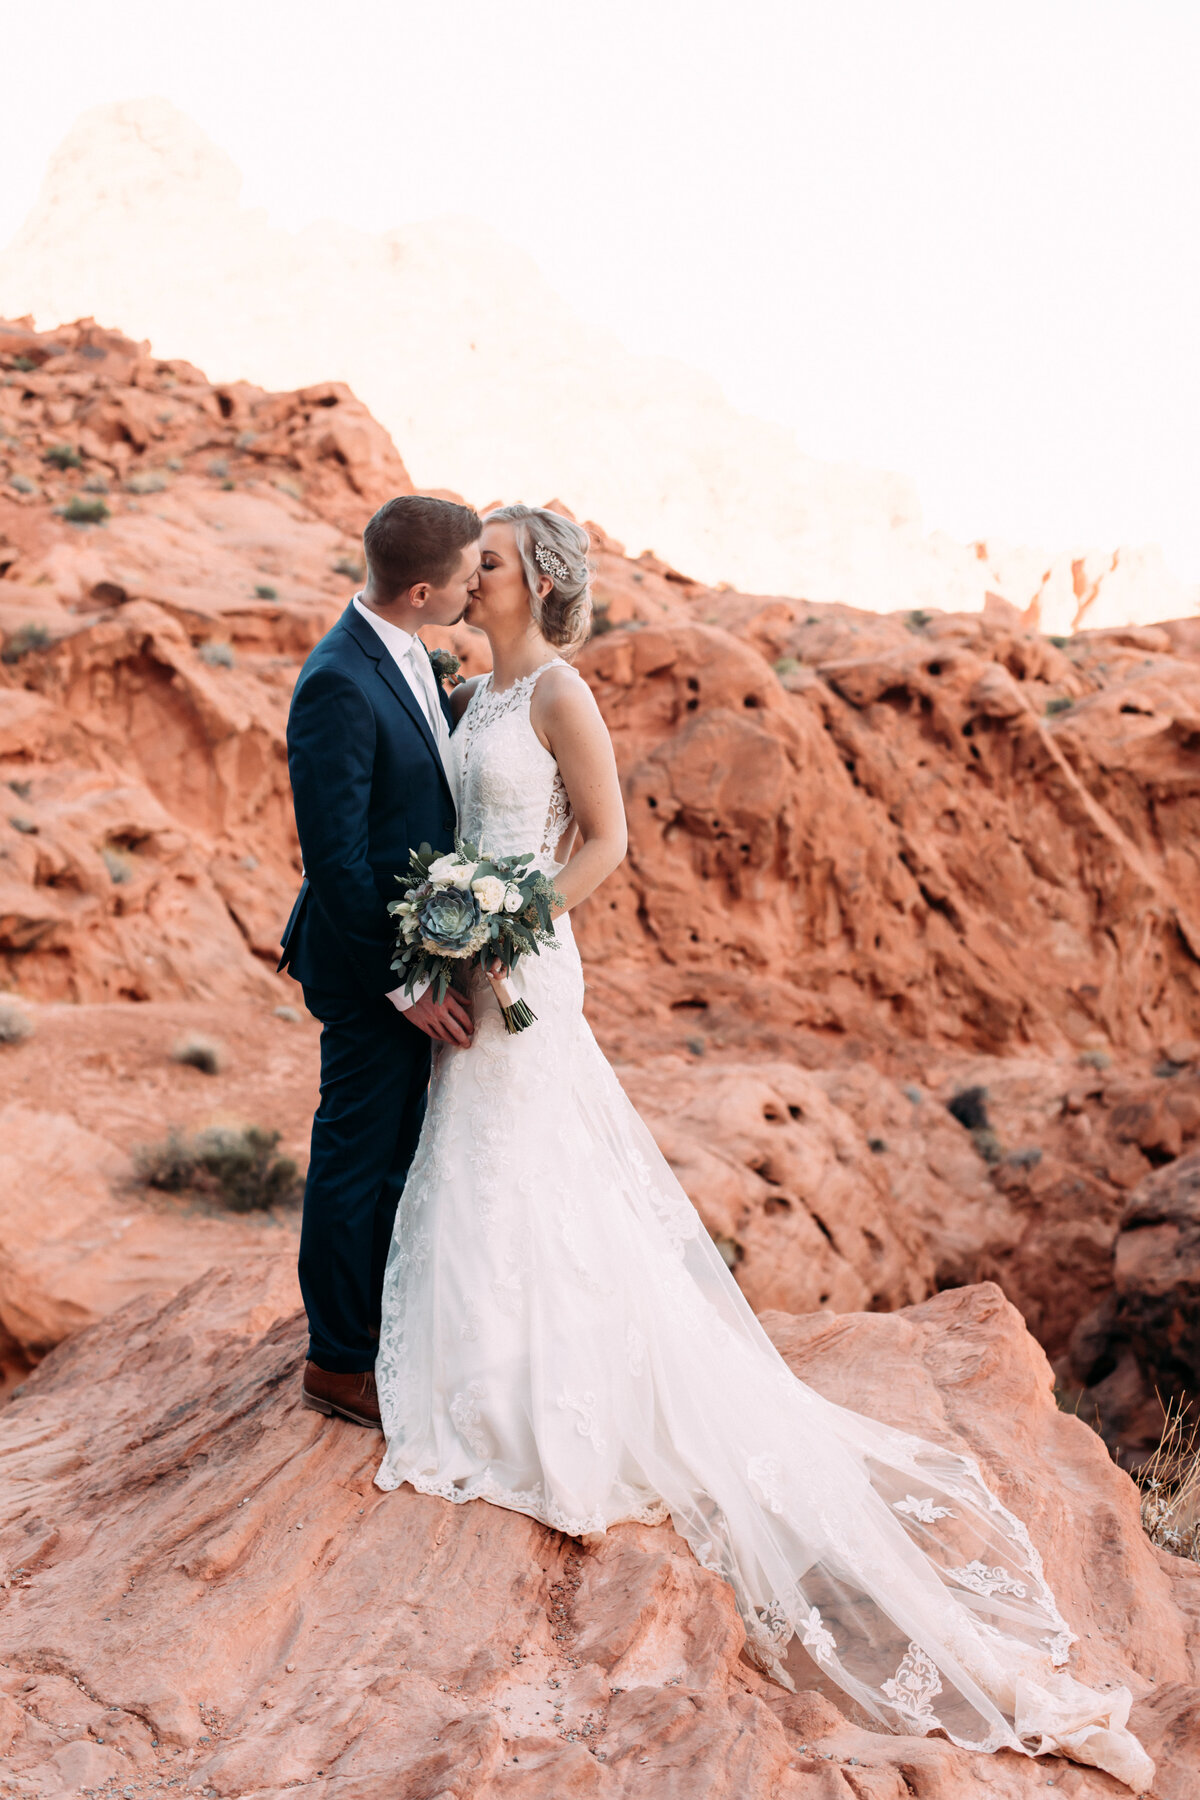 Heather+Ivan|AshlynSavannahPhoto|ValleyofFireElopement-97